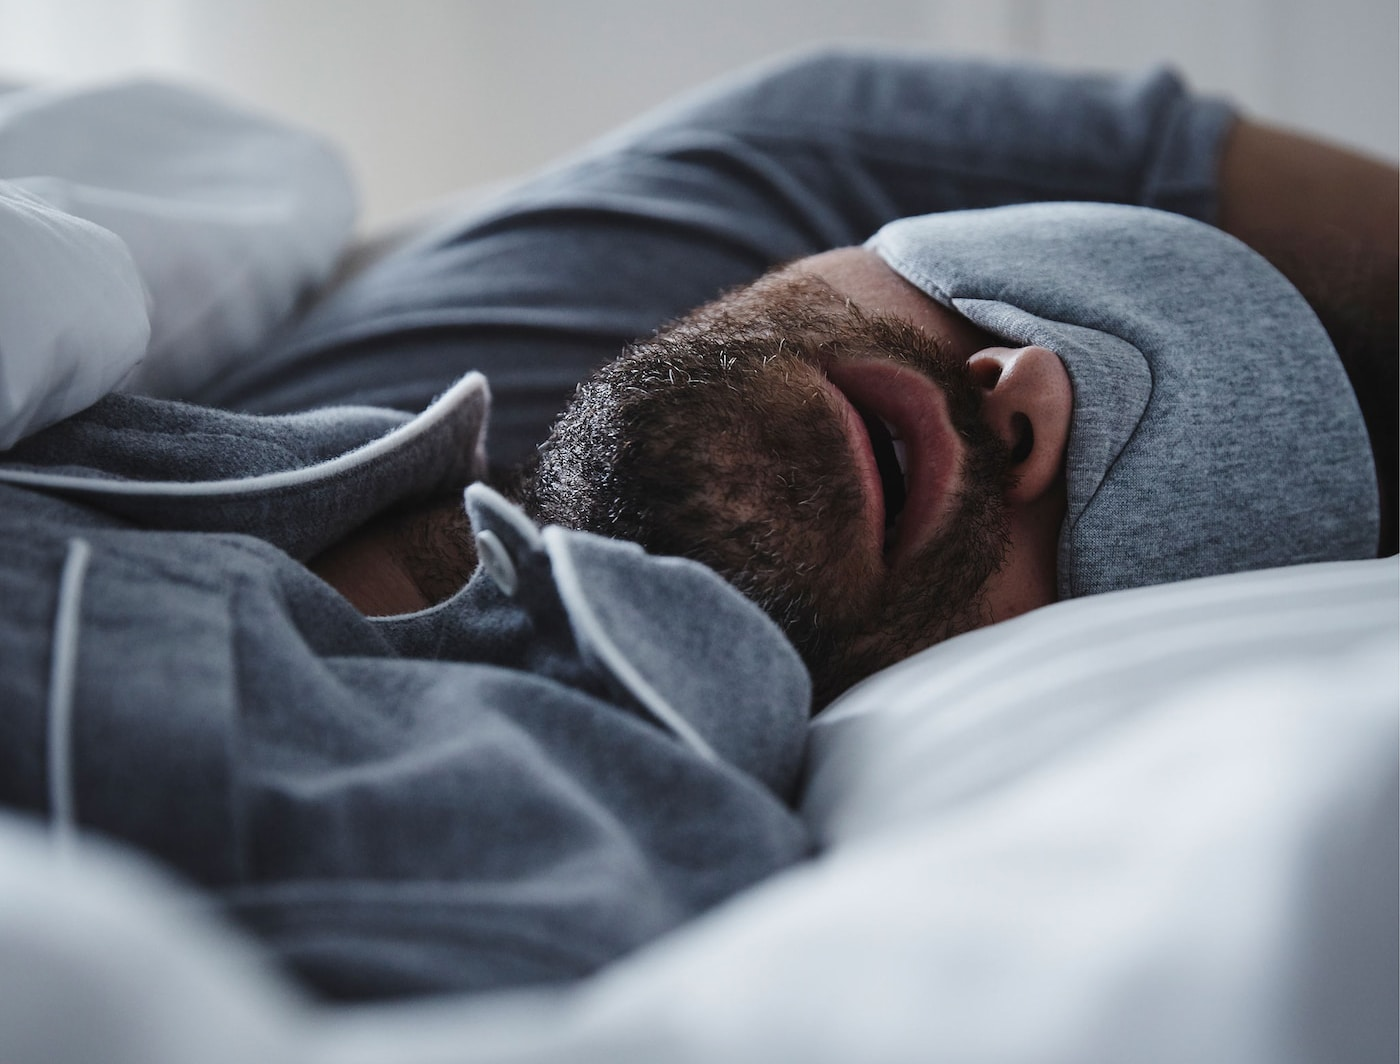 A man wearing blue pajamas and matching eye-mask lies asleep in bed.